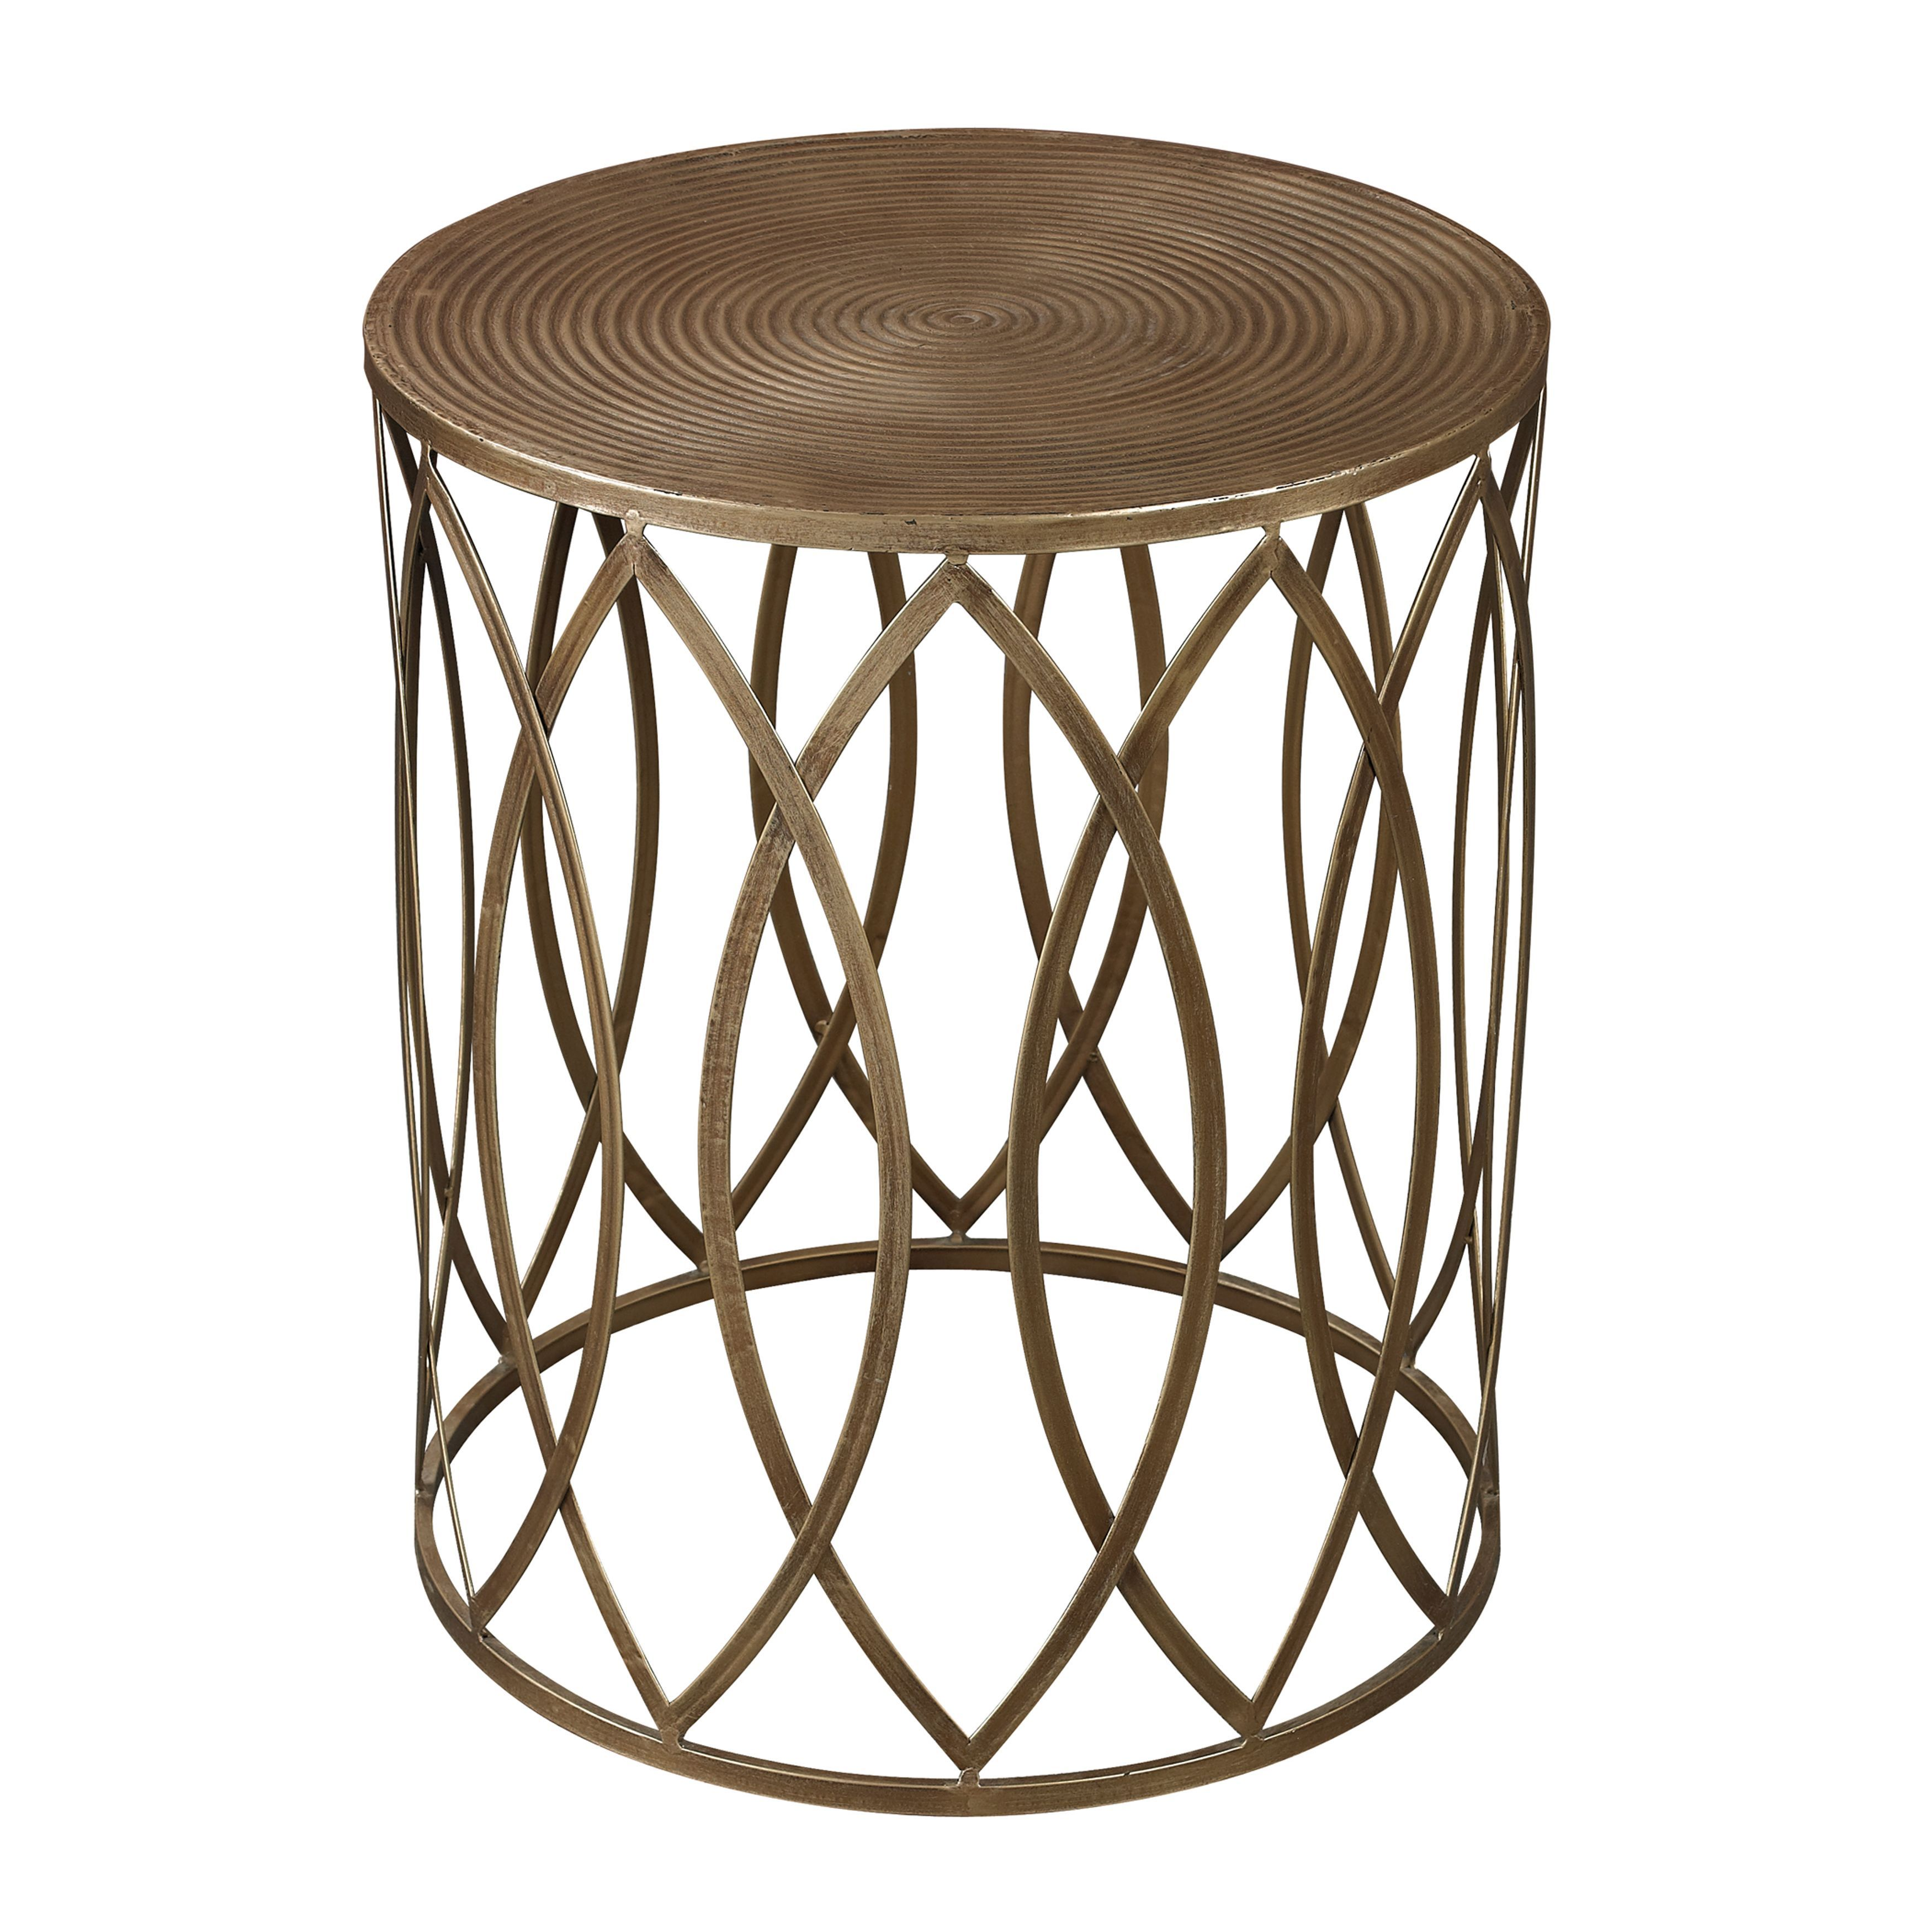 home set product hudson gold table decor tables zoa accent